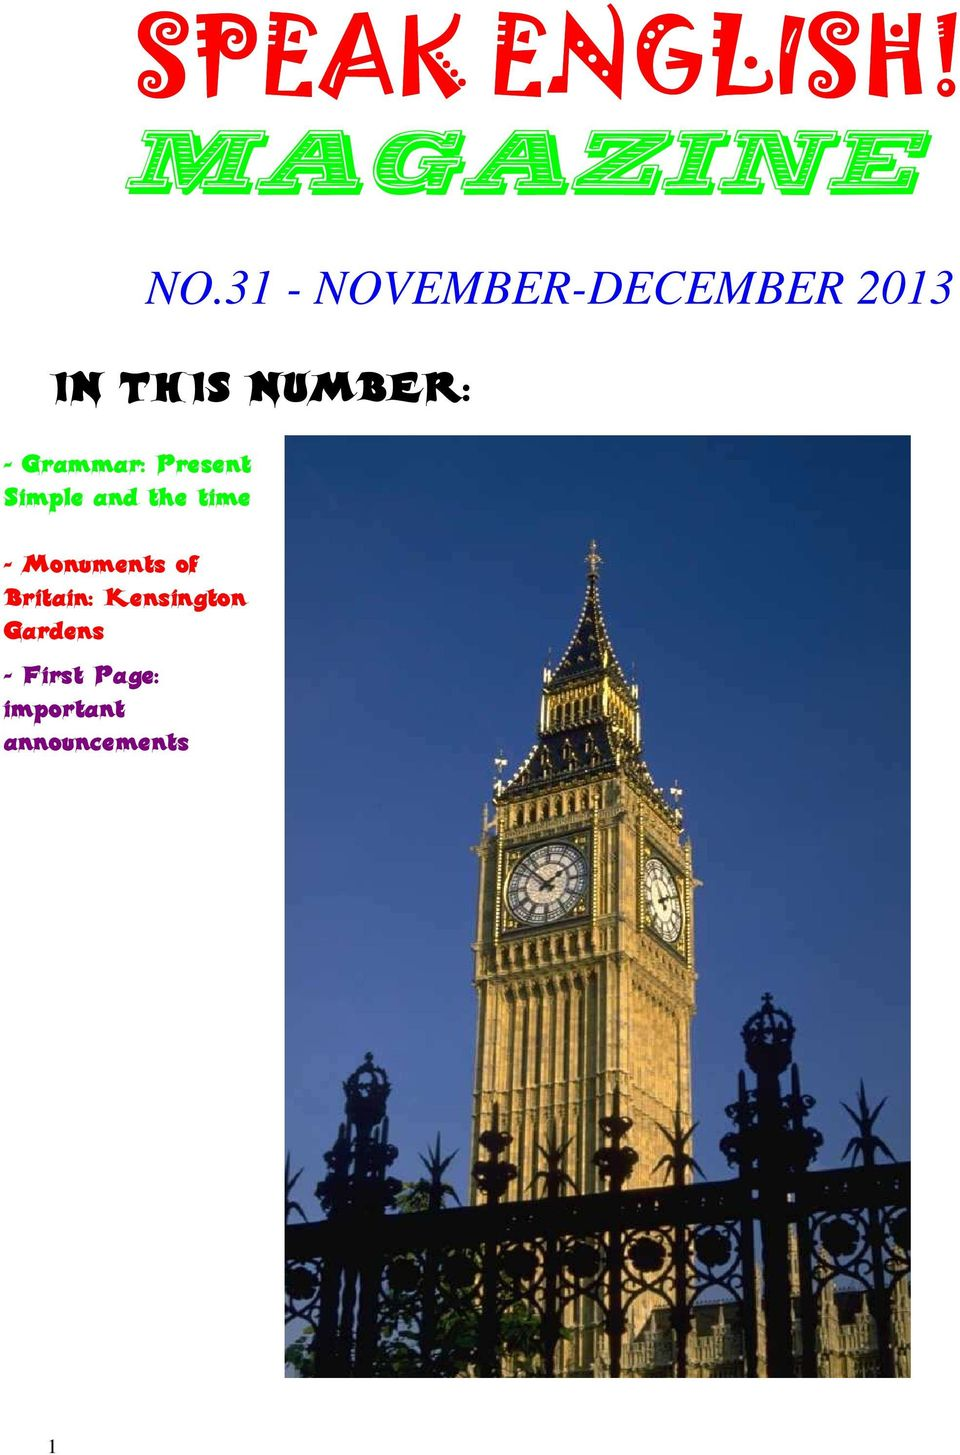 31 - NOVEMBER-DECEMBER 2013 IN THIS NUMBER: -